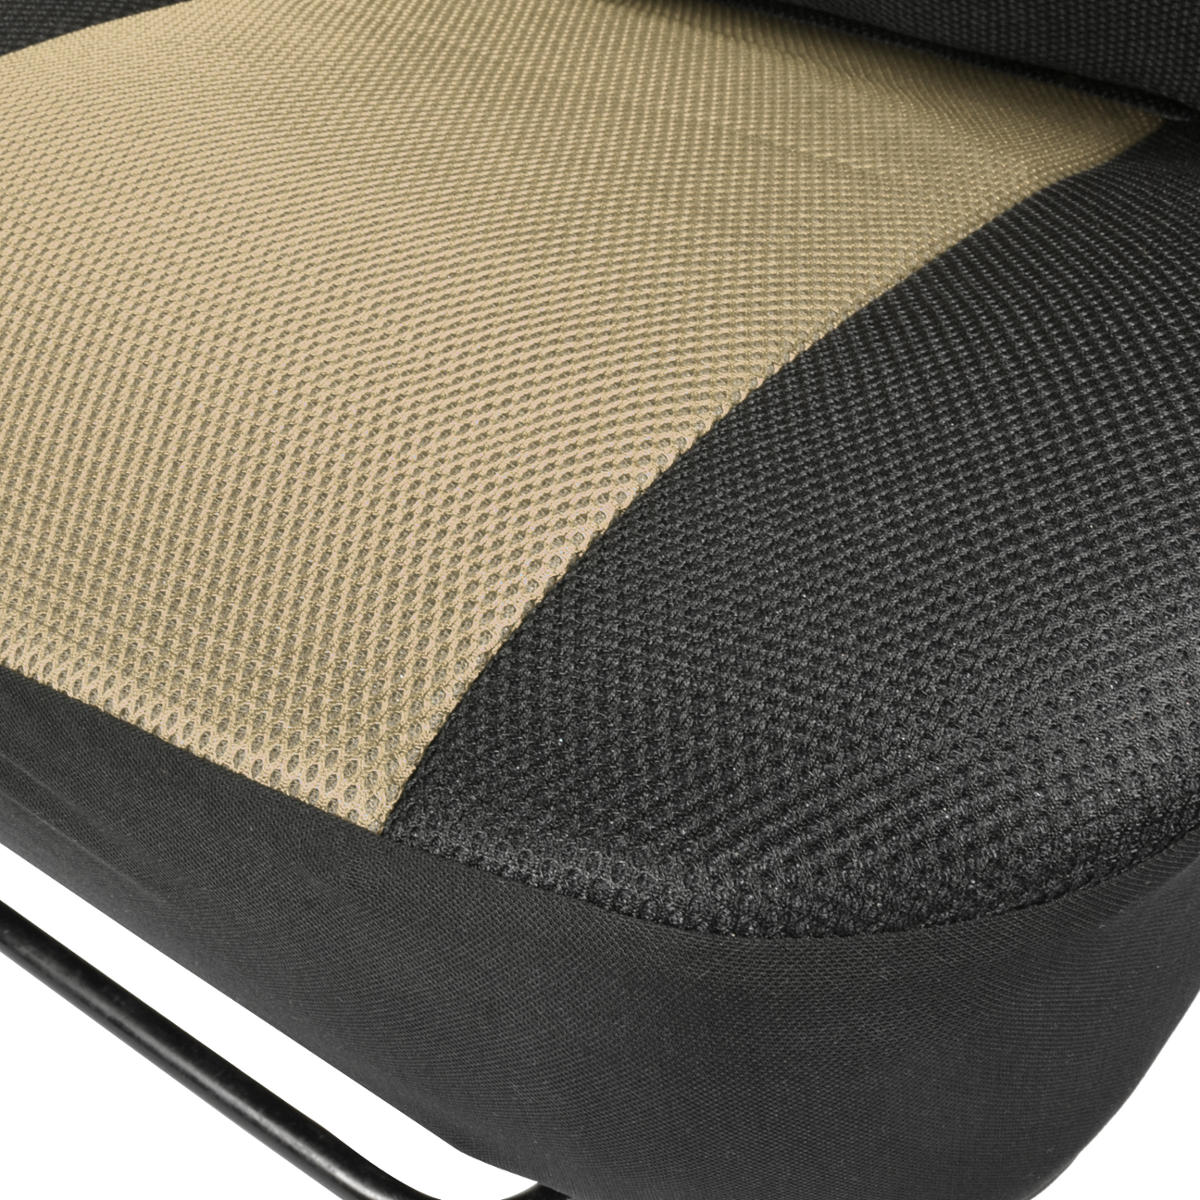 black beige mesh car seat covers premier model thickest fabric padding ebay. Black Bedroom Furniture Sets. Home Design Ideas